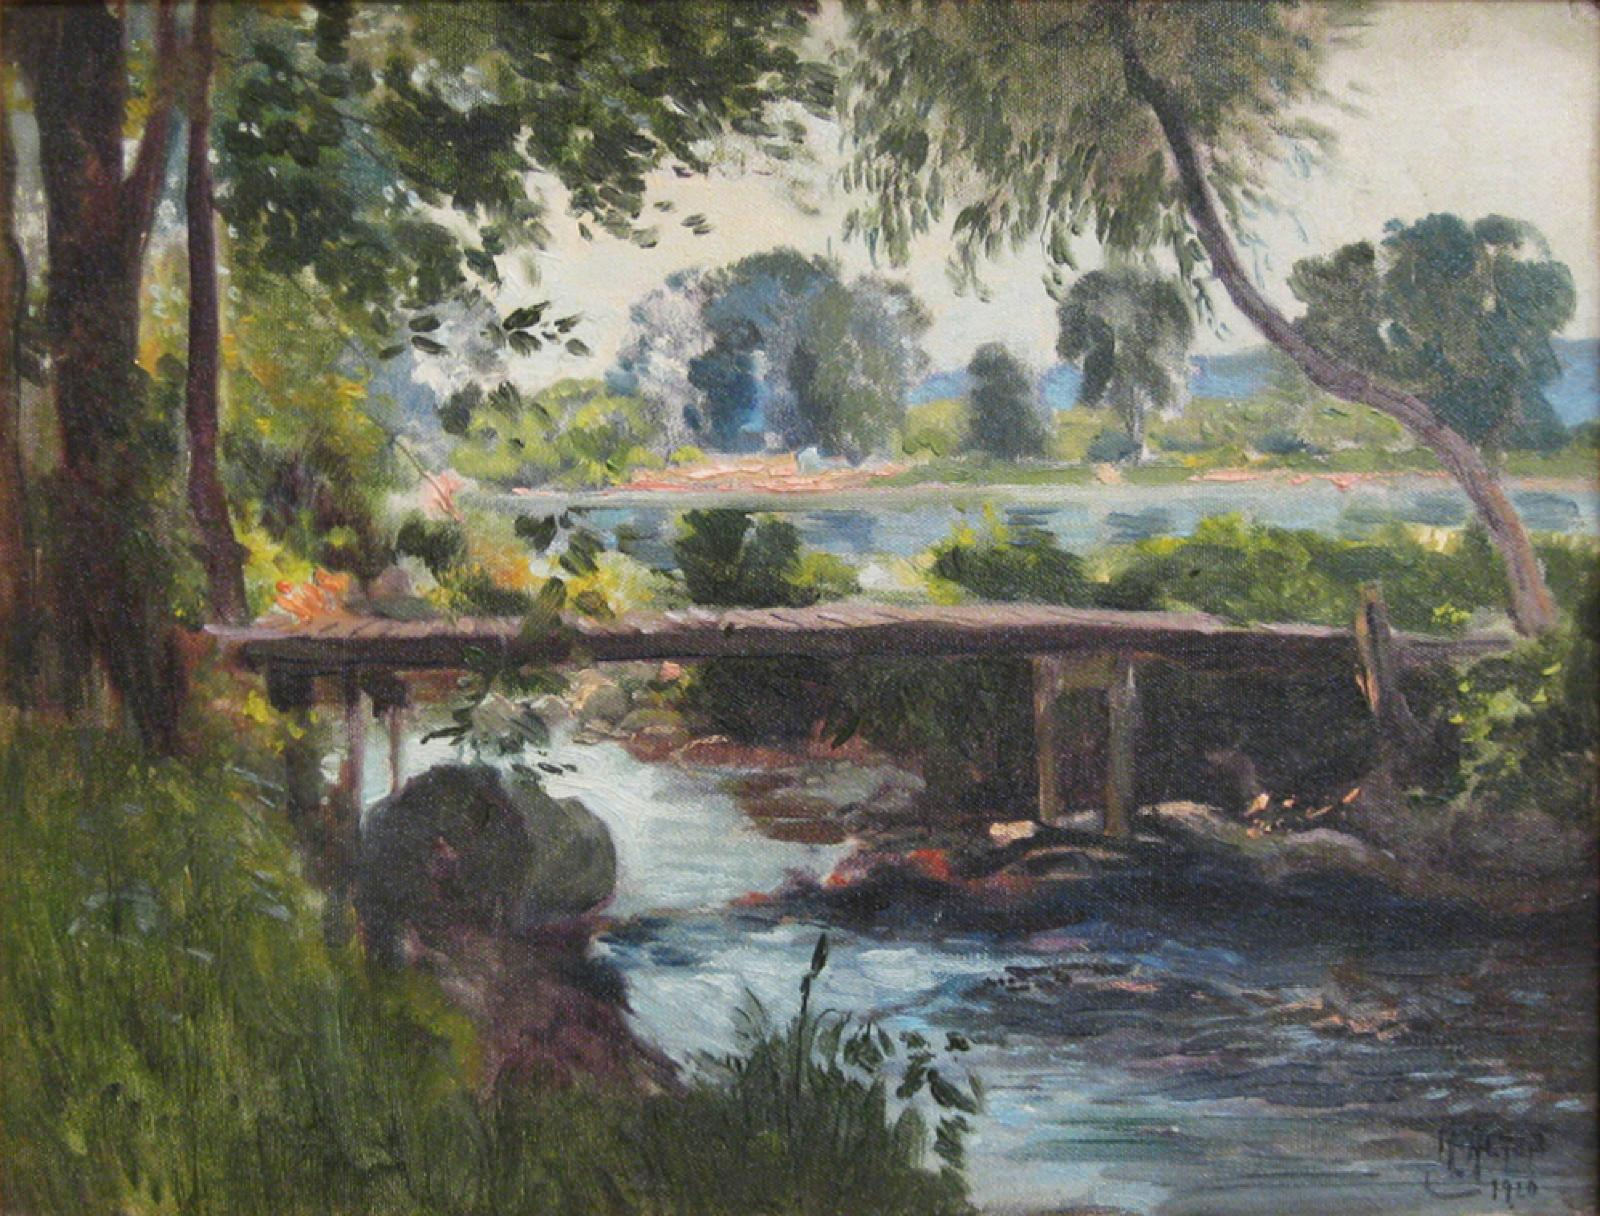 A landscape painting of a small wooden bridge over a creek.